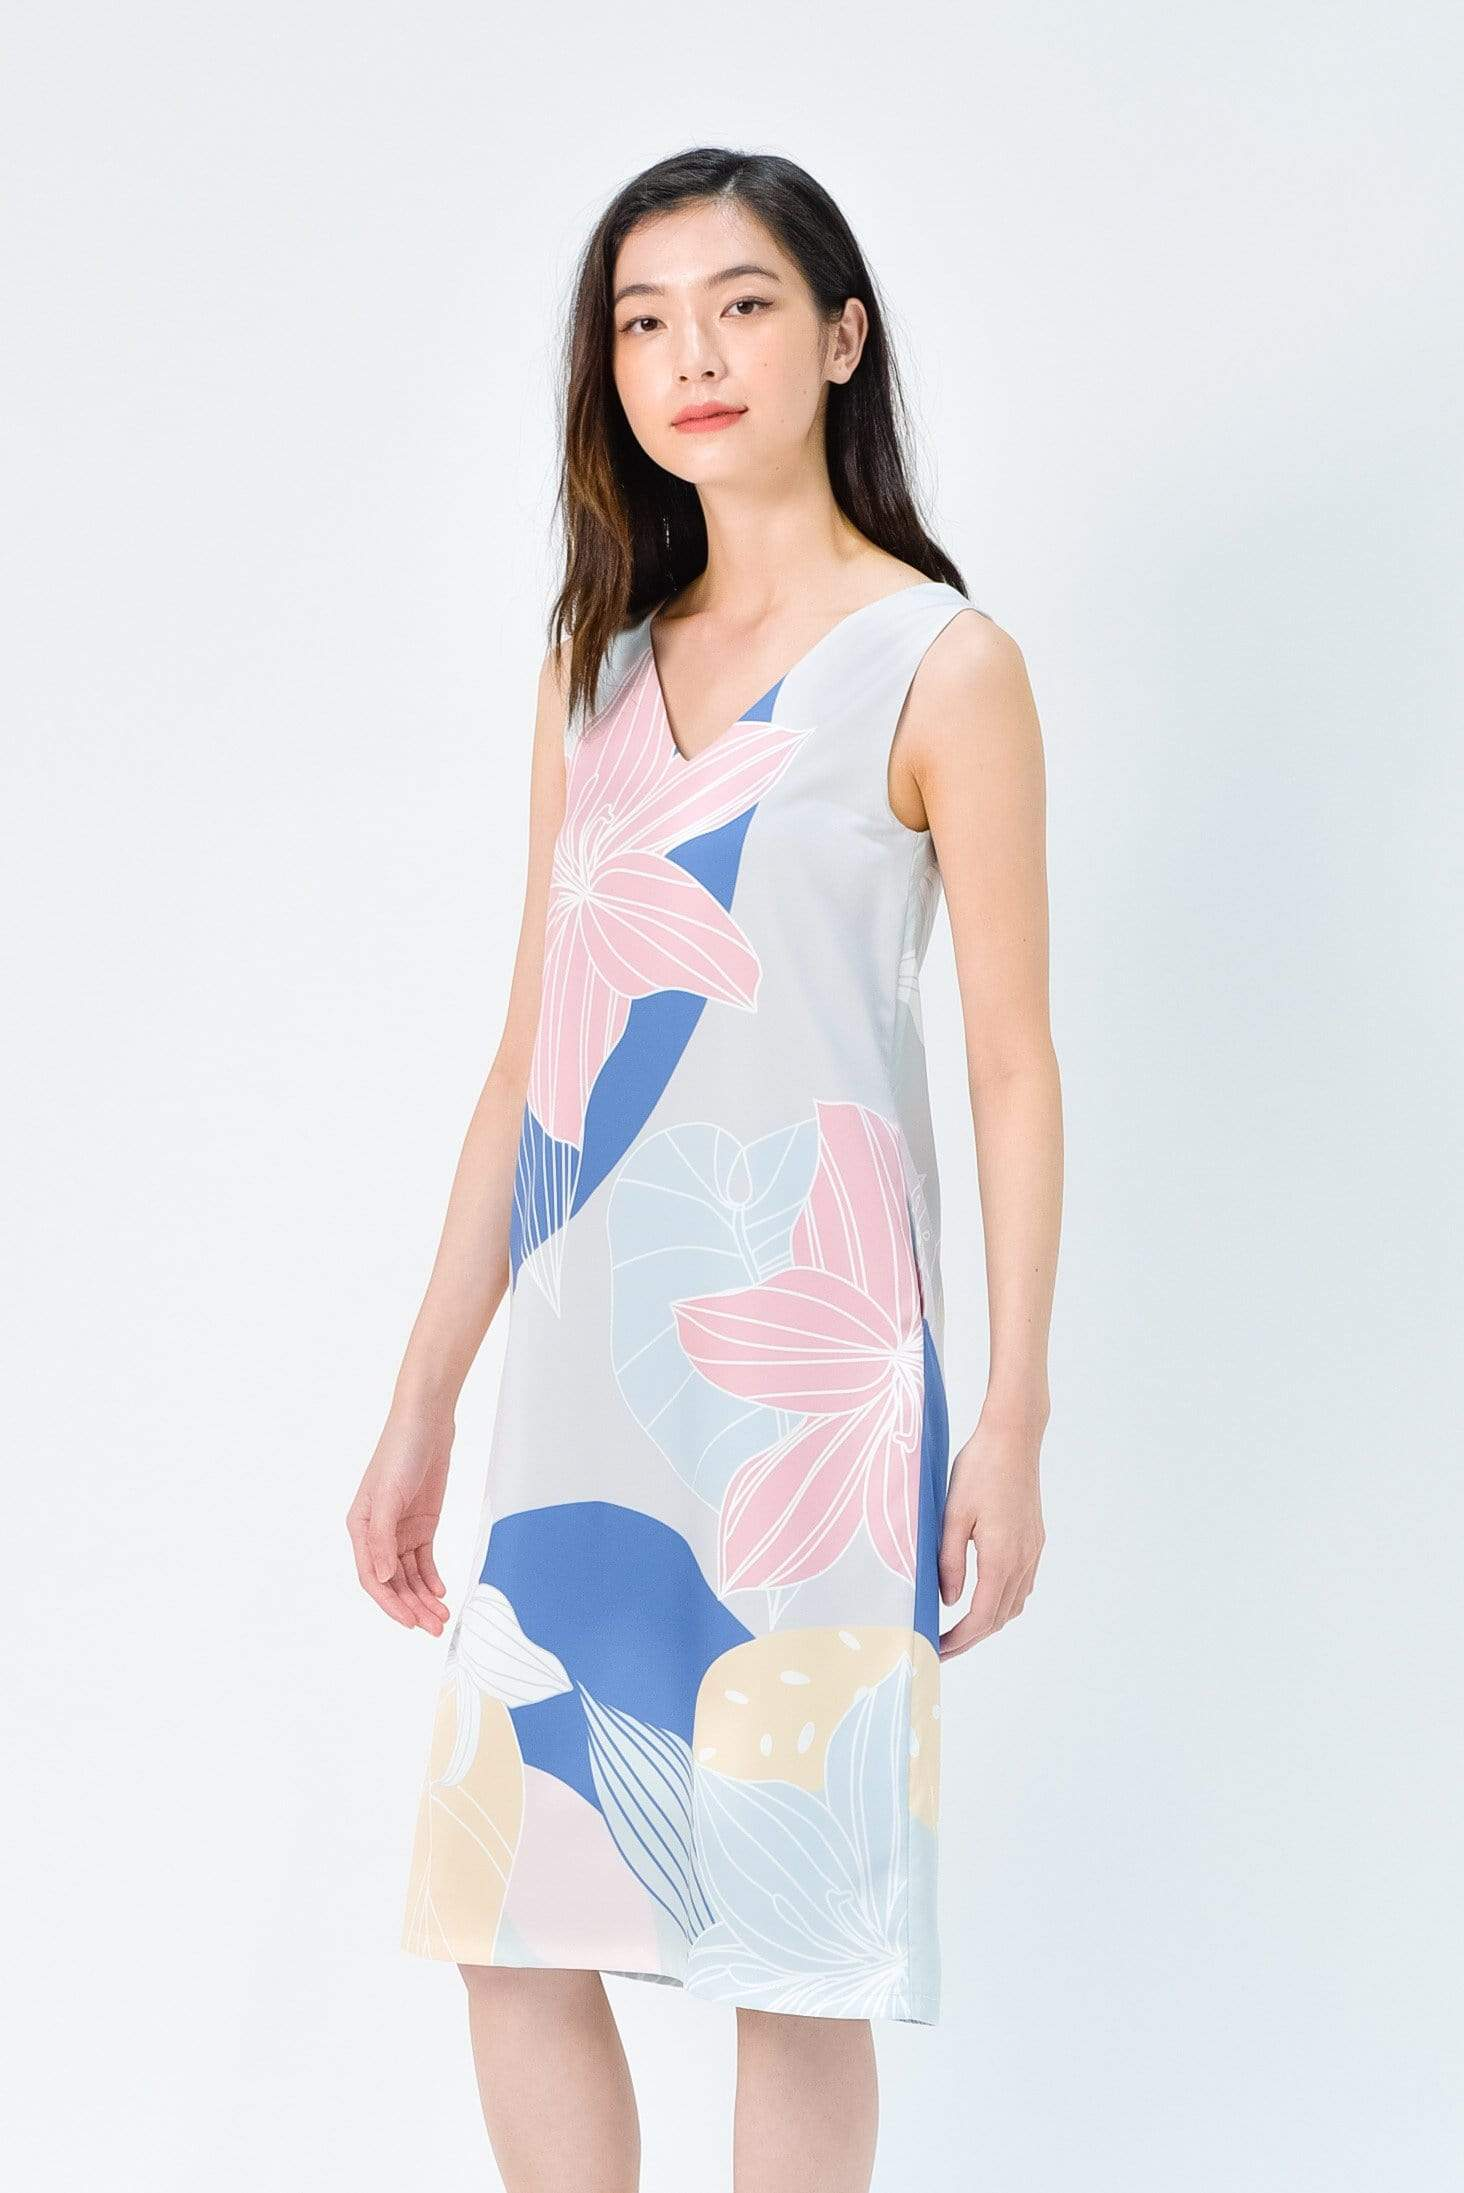 FAIRYTALE TWO-WAY SHIFT DRESS IN PASTEL